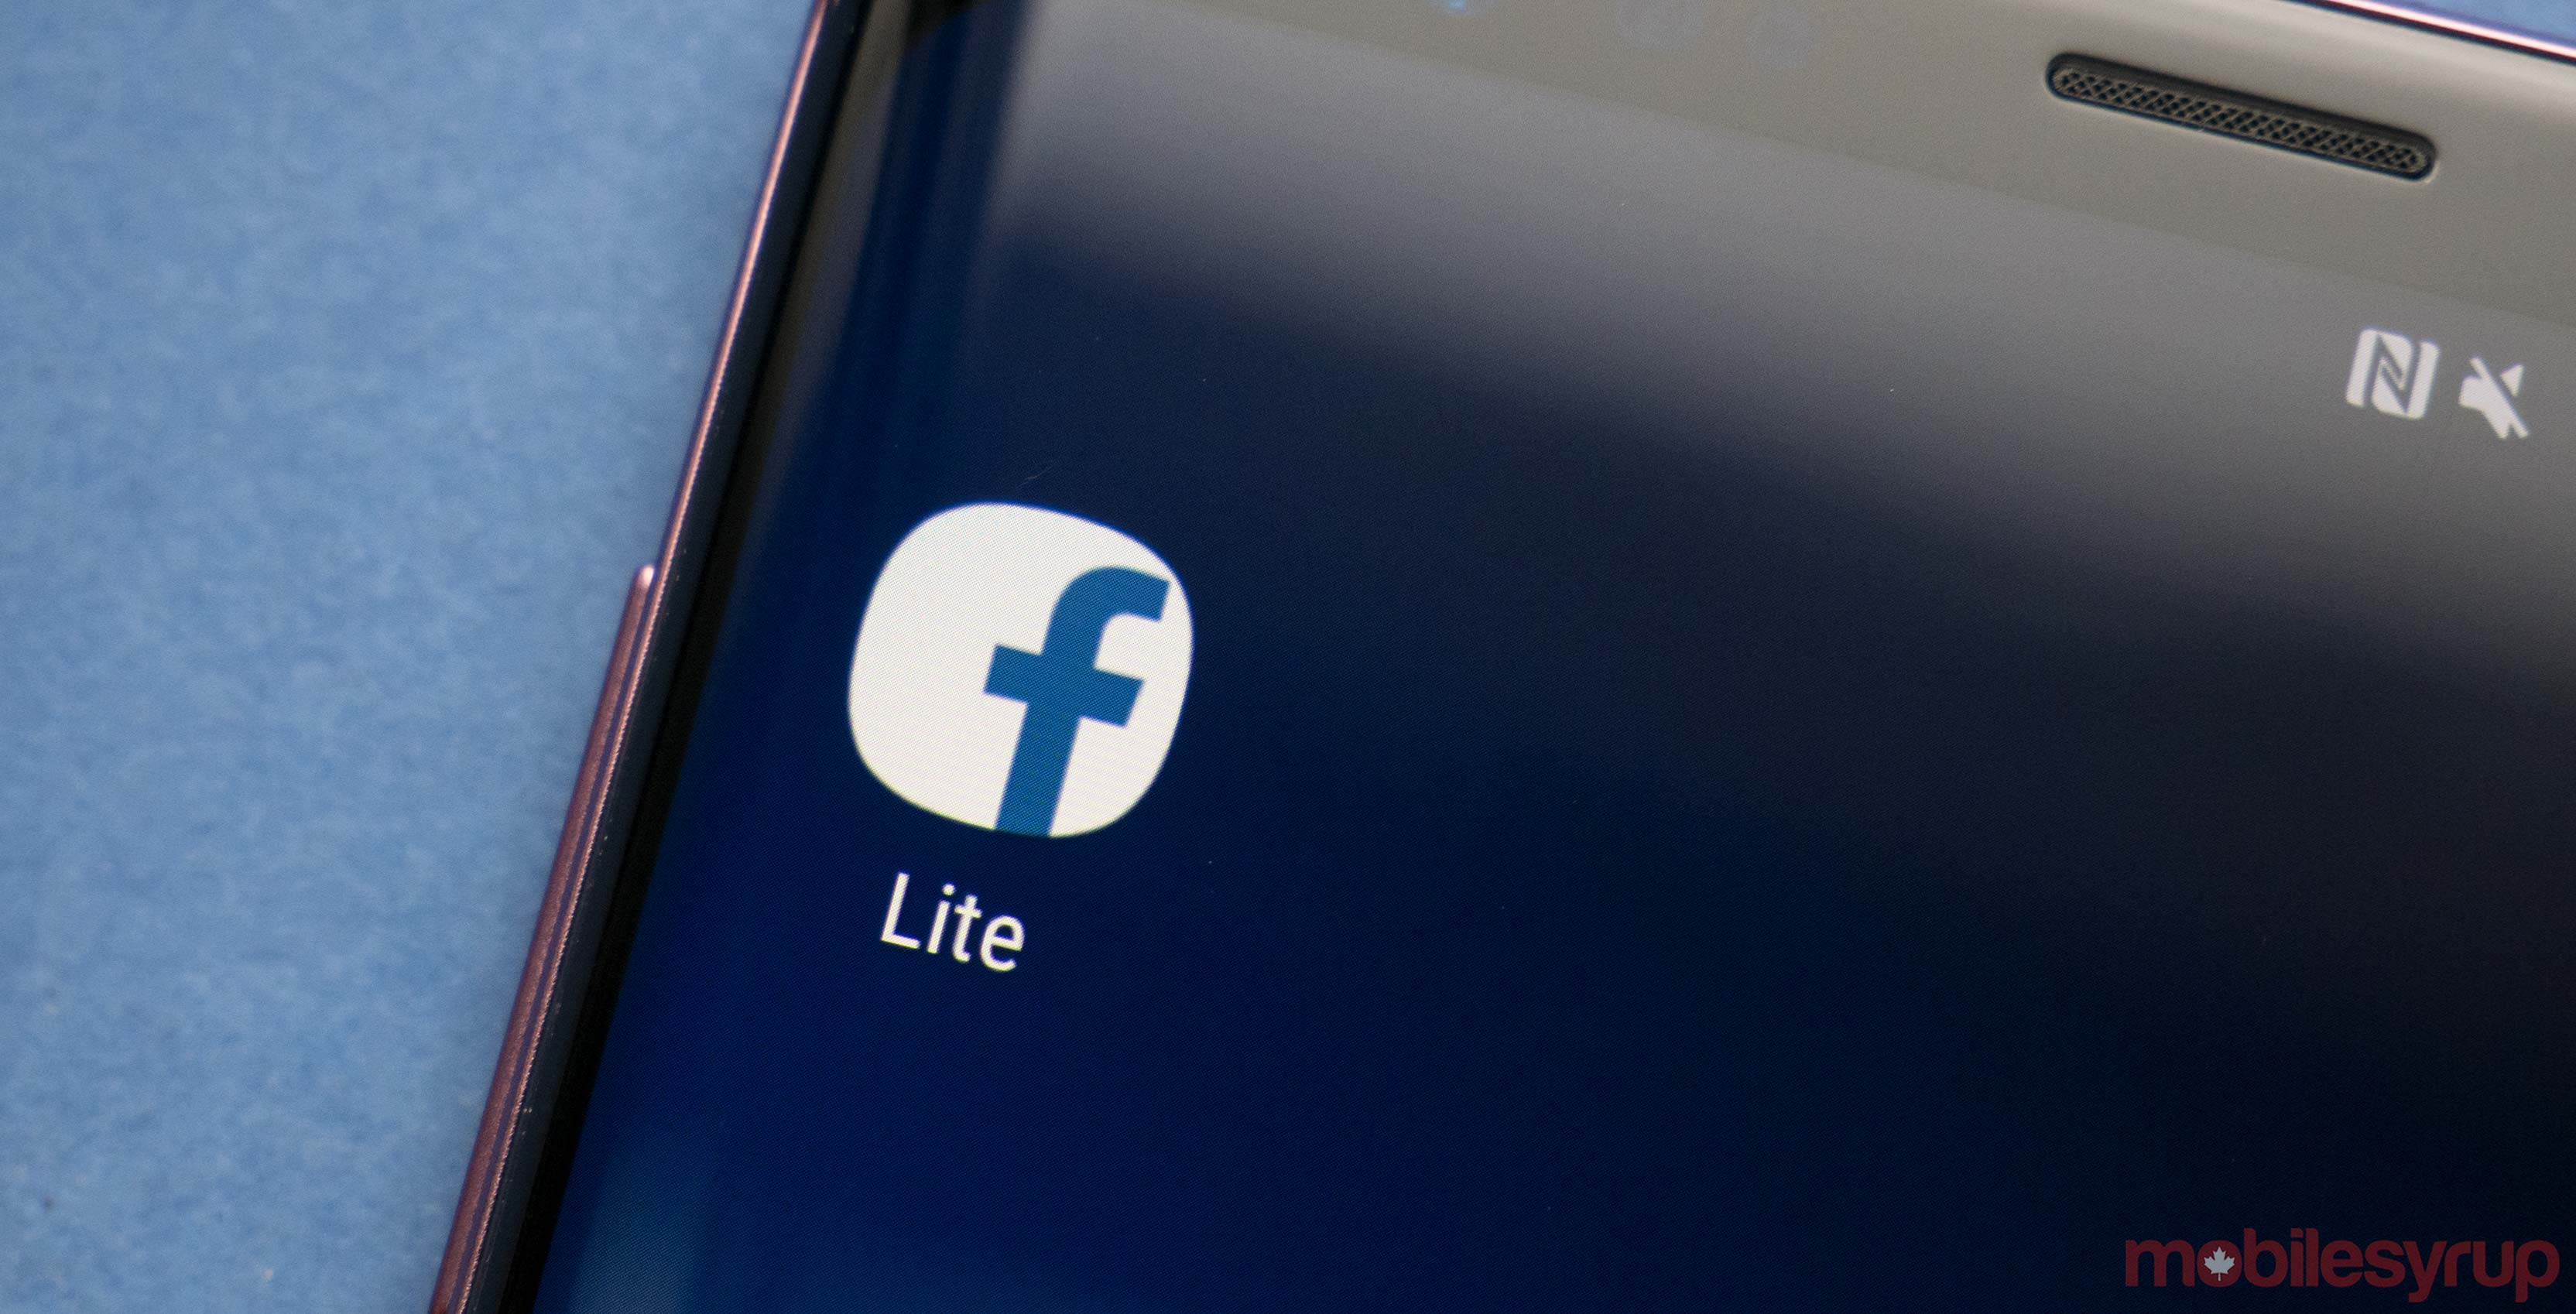 Facebook Lite is now available on Android in Canada